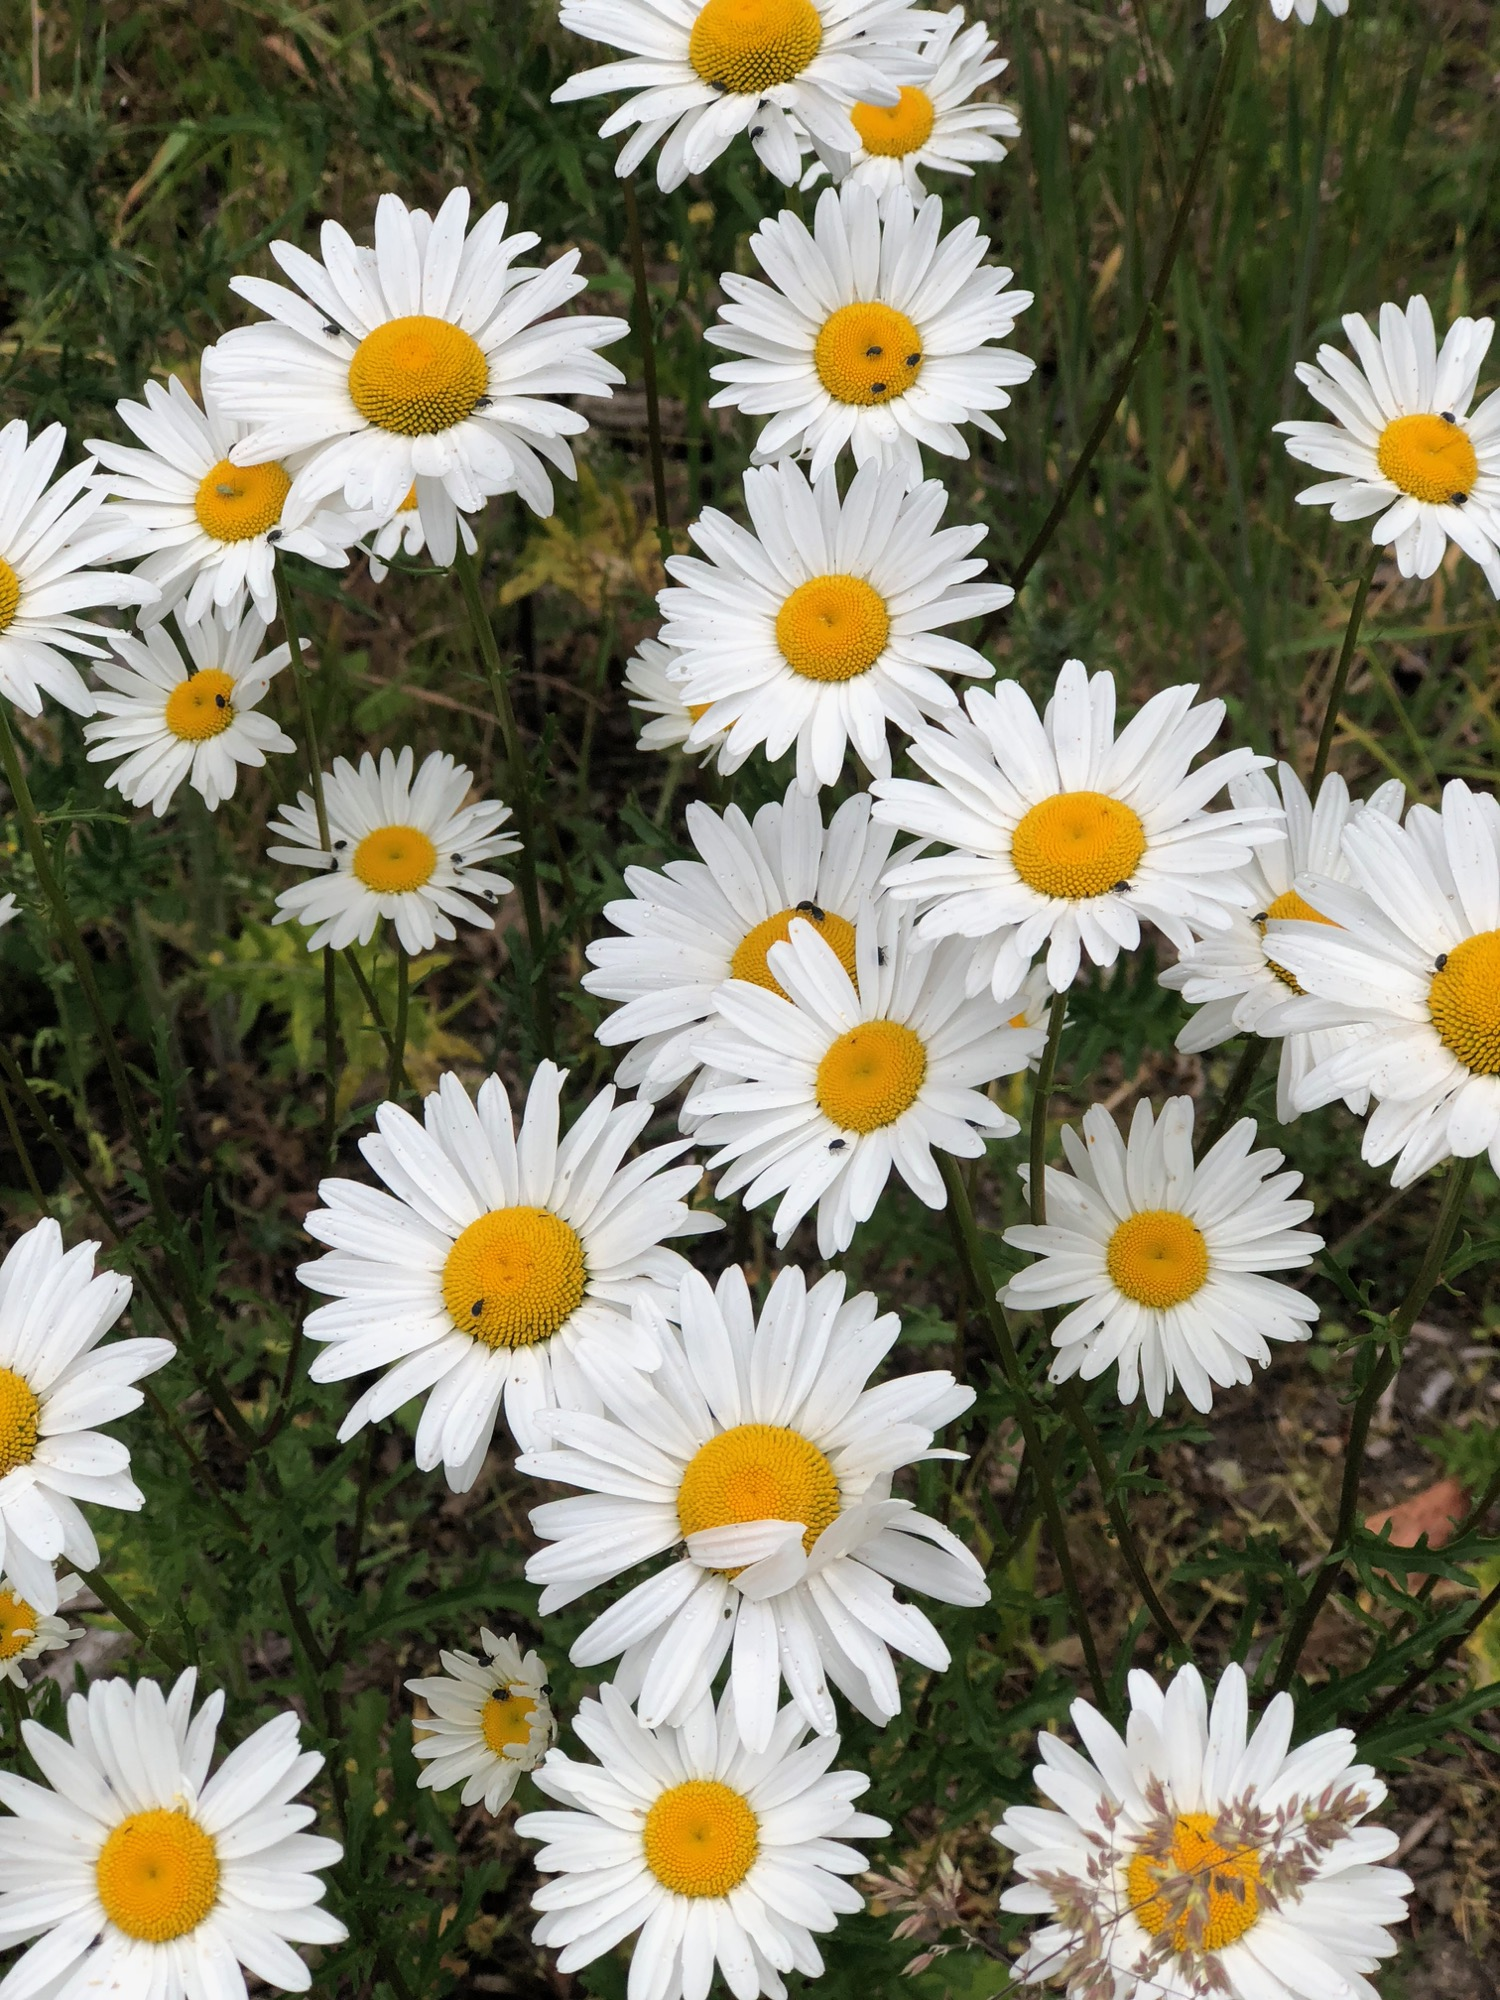 Justine was particularly excited by the big bunches of daisies growing wild across the lot.